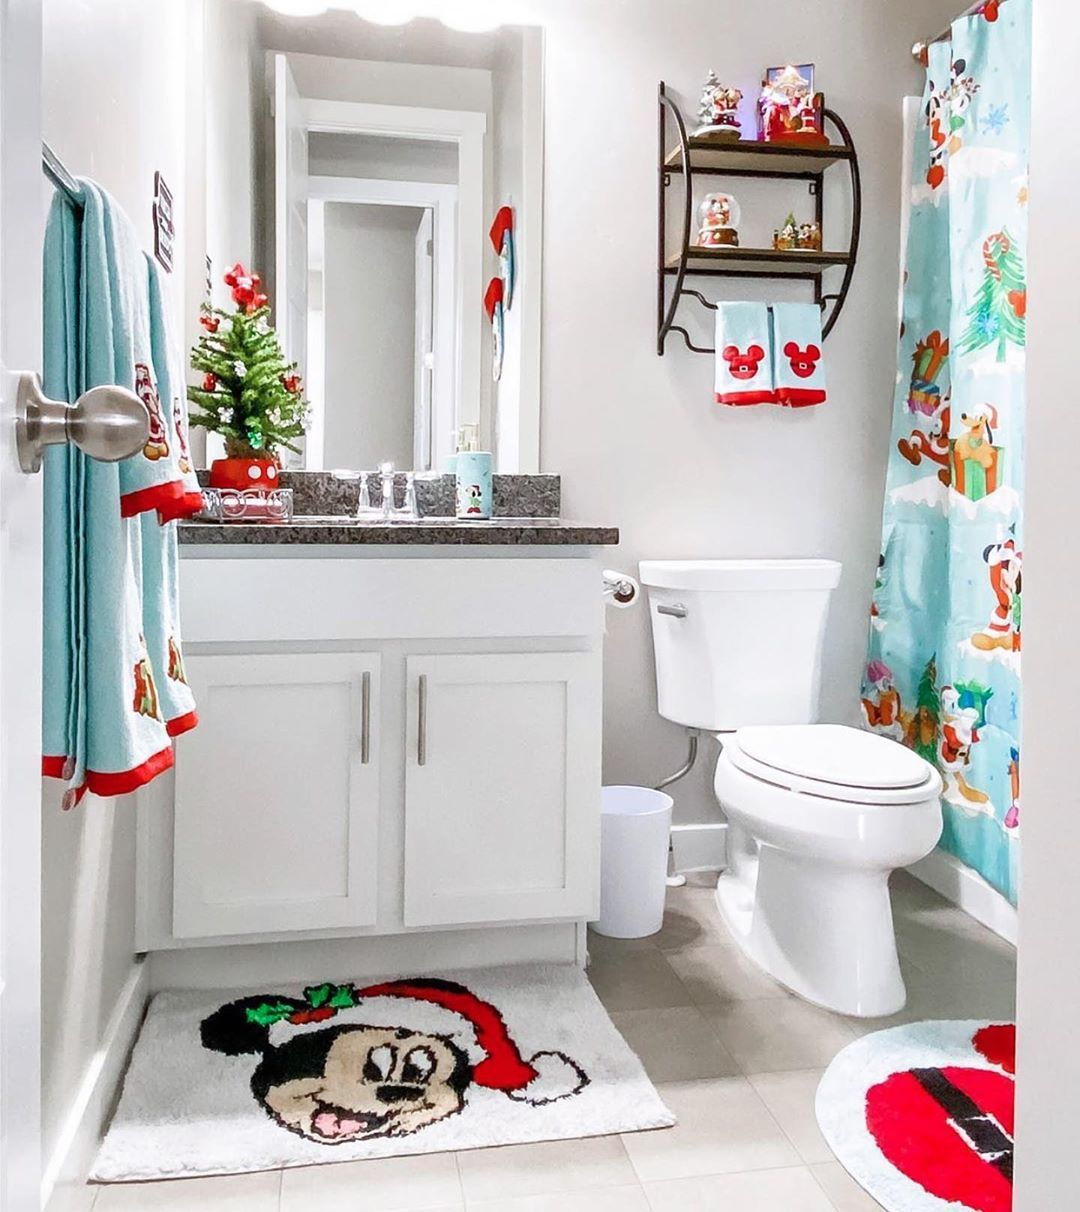 Is It Too Late In The Christmas Season To Decorate My Bathroom Like This Disney Disneychristmas Christmas Bathroom Decor Disney Bathroom Disney Home Decor